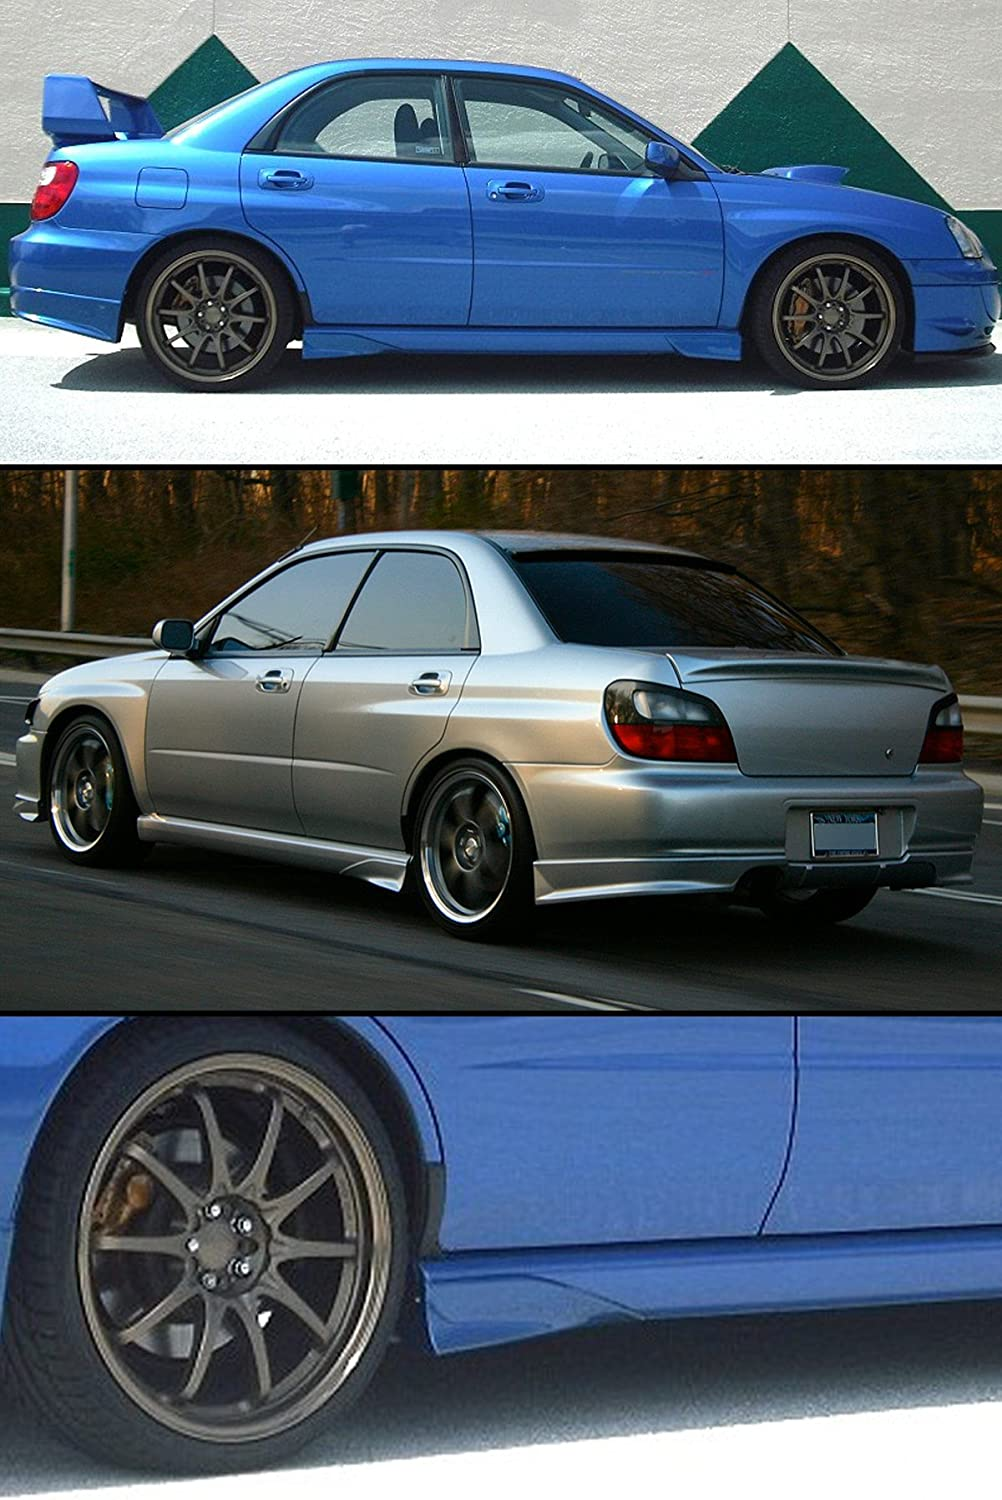 Fits for 2002-2007 Impreza WRX STI GD Front Add-on Side Skirt Aero Guard Strake Spats 2 Pieces